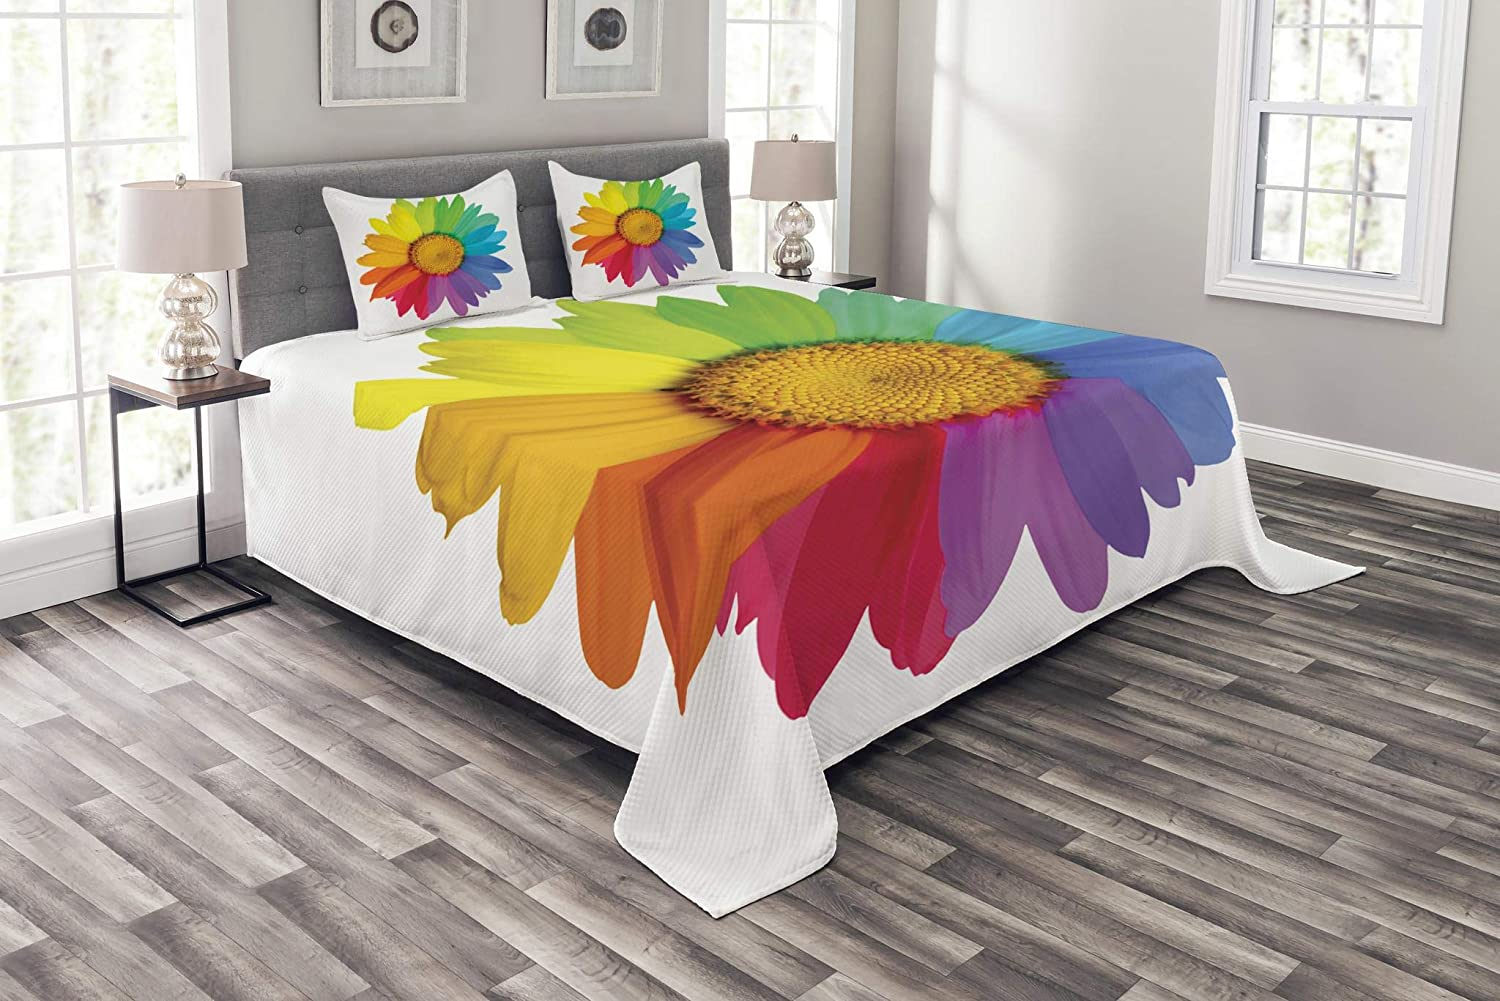 Ambesonne Flower Bedspread, Rainbow Colored Sunflower or Daisy Spring Inspired Image Hippie Style Modern Design, Decorative Quilted 3 Piece Coverlet Set with 2 Pillow Shams, Queen Size, Rainbow Colors